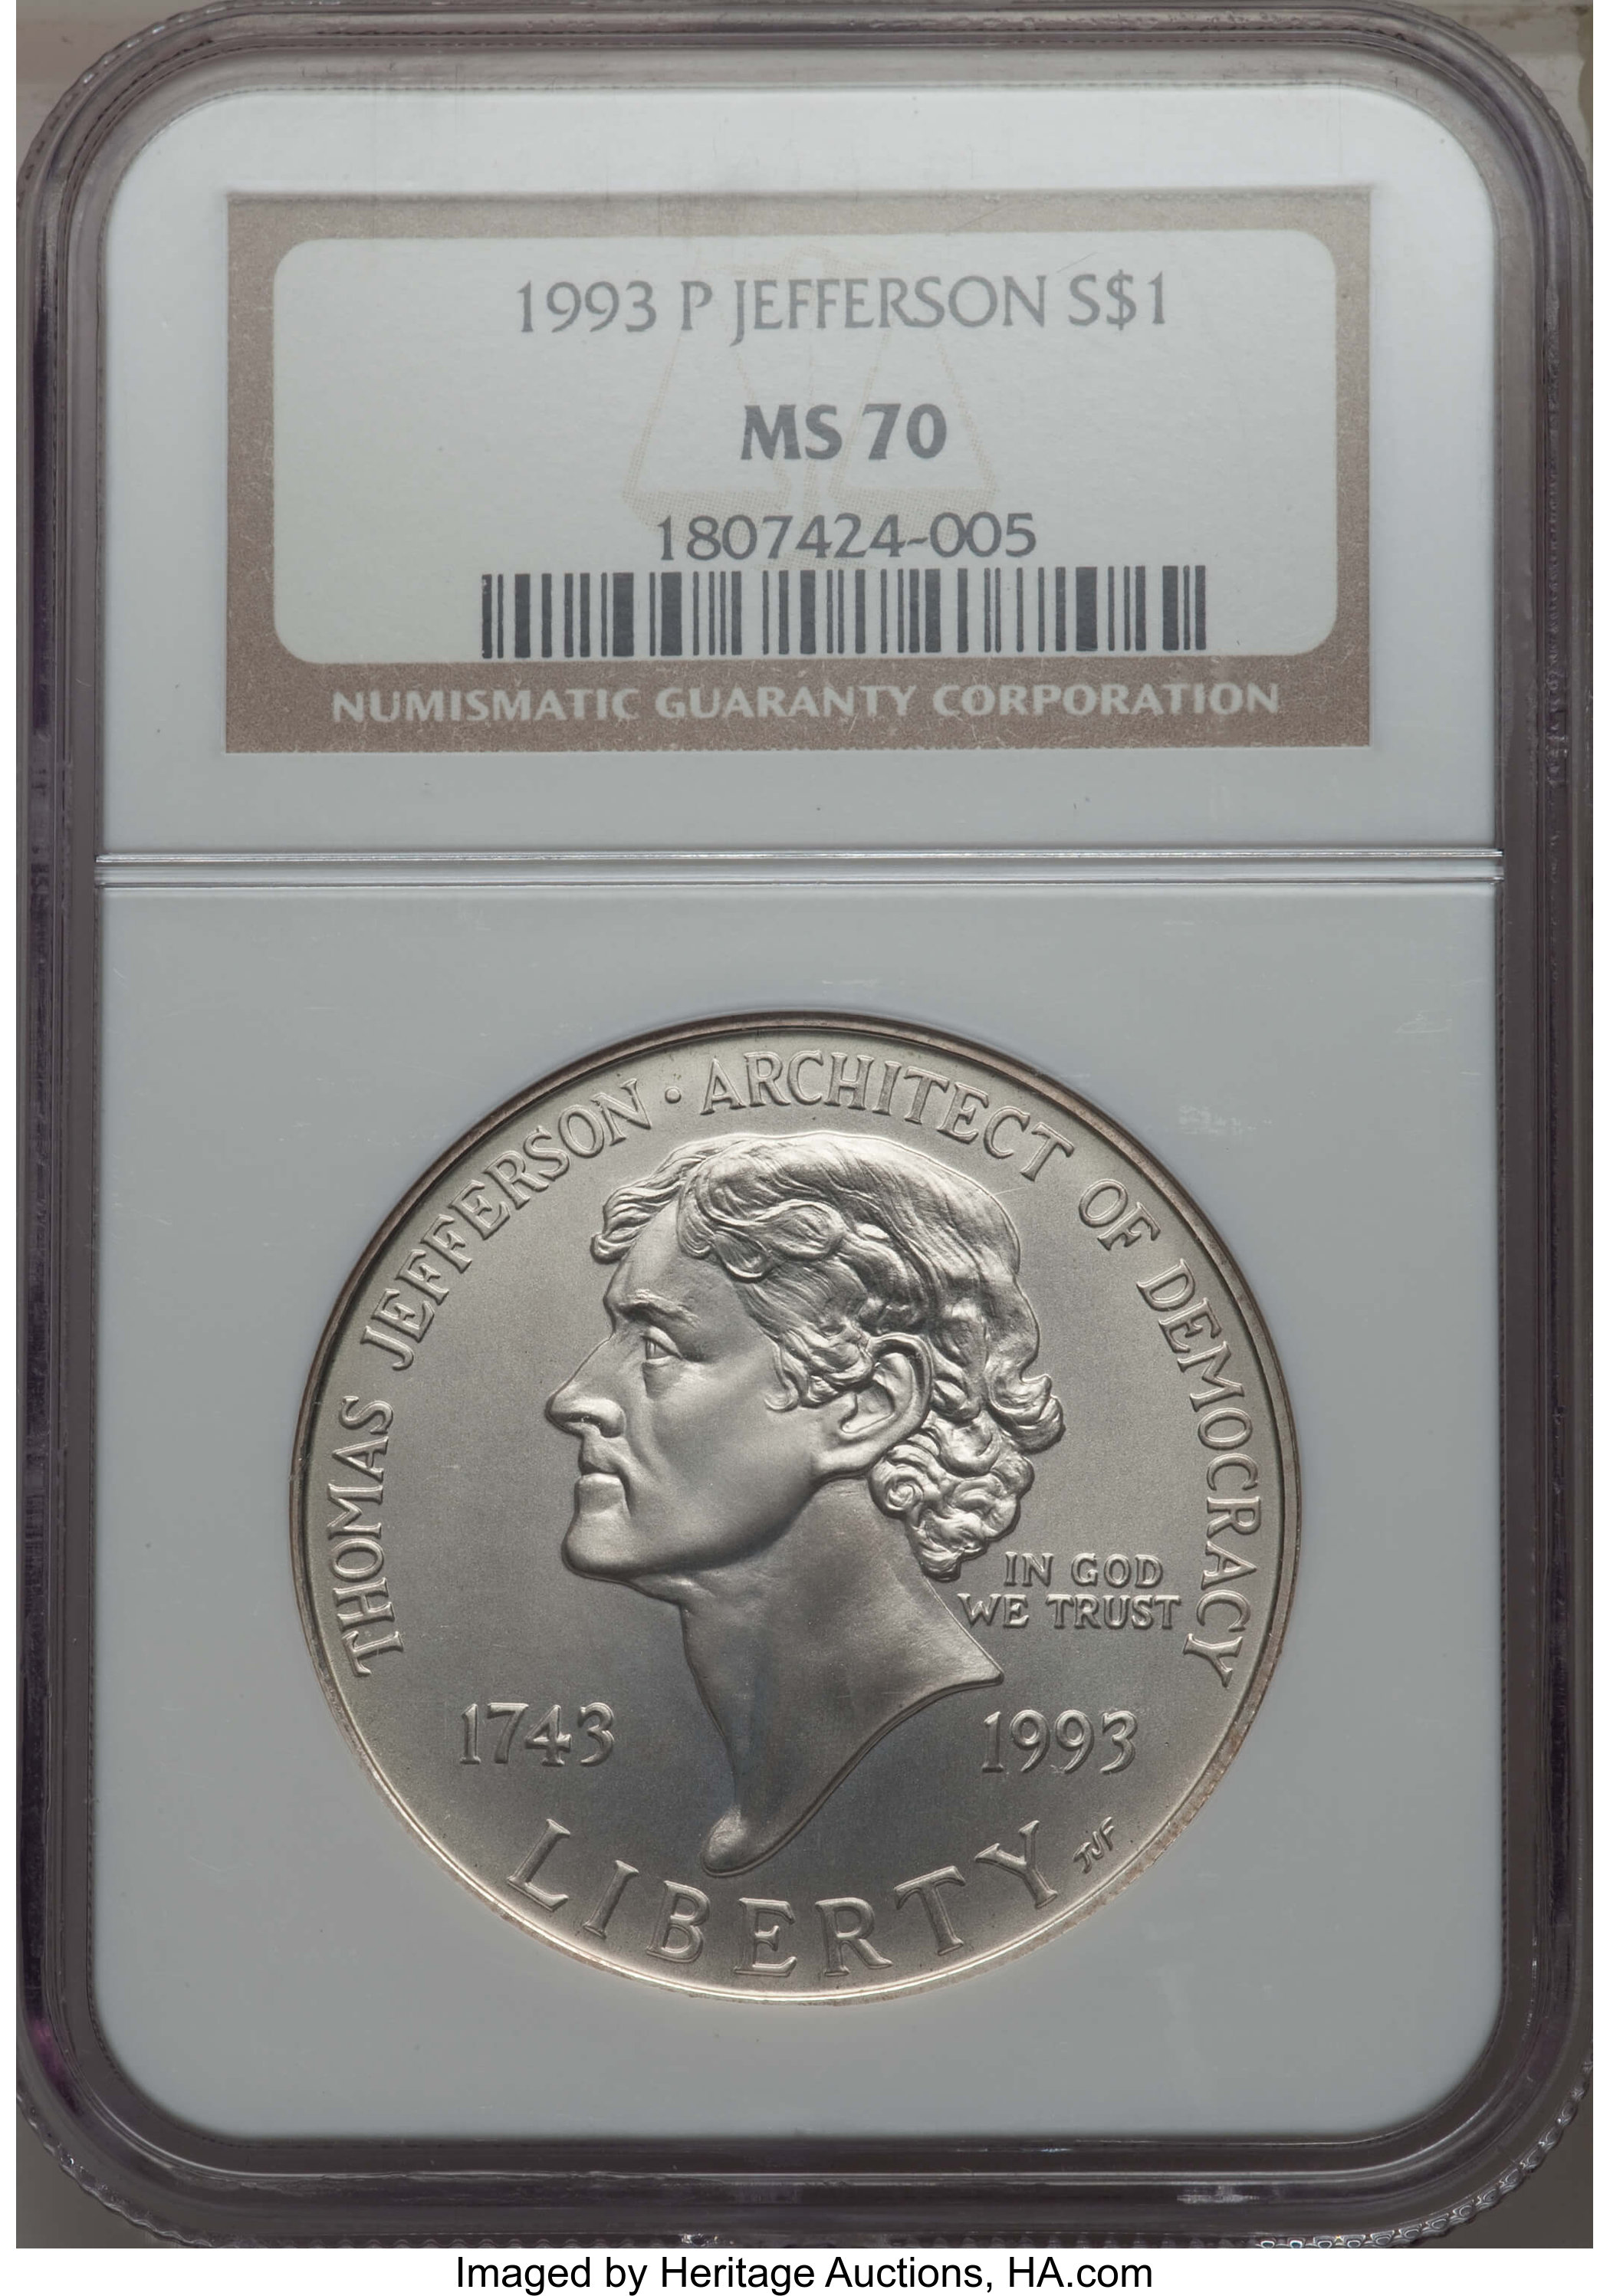 MS70 NGC 1993-P JEFFERSON silver $1